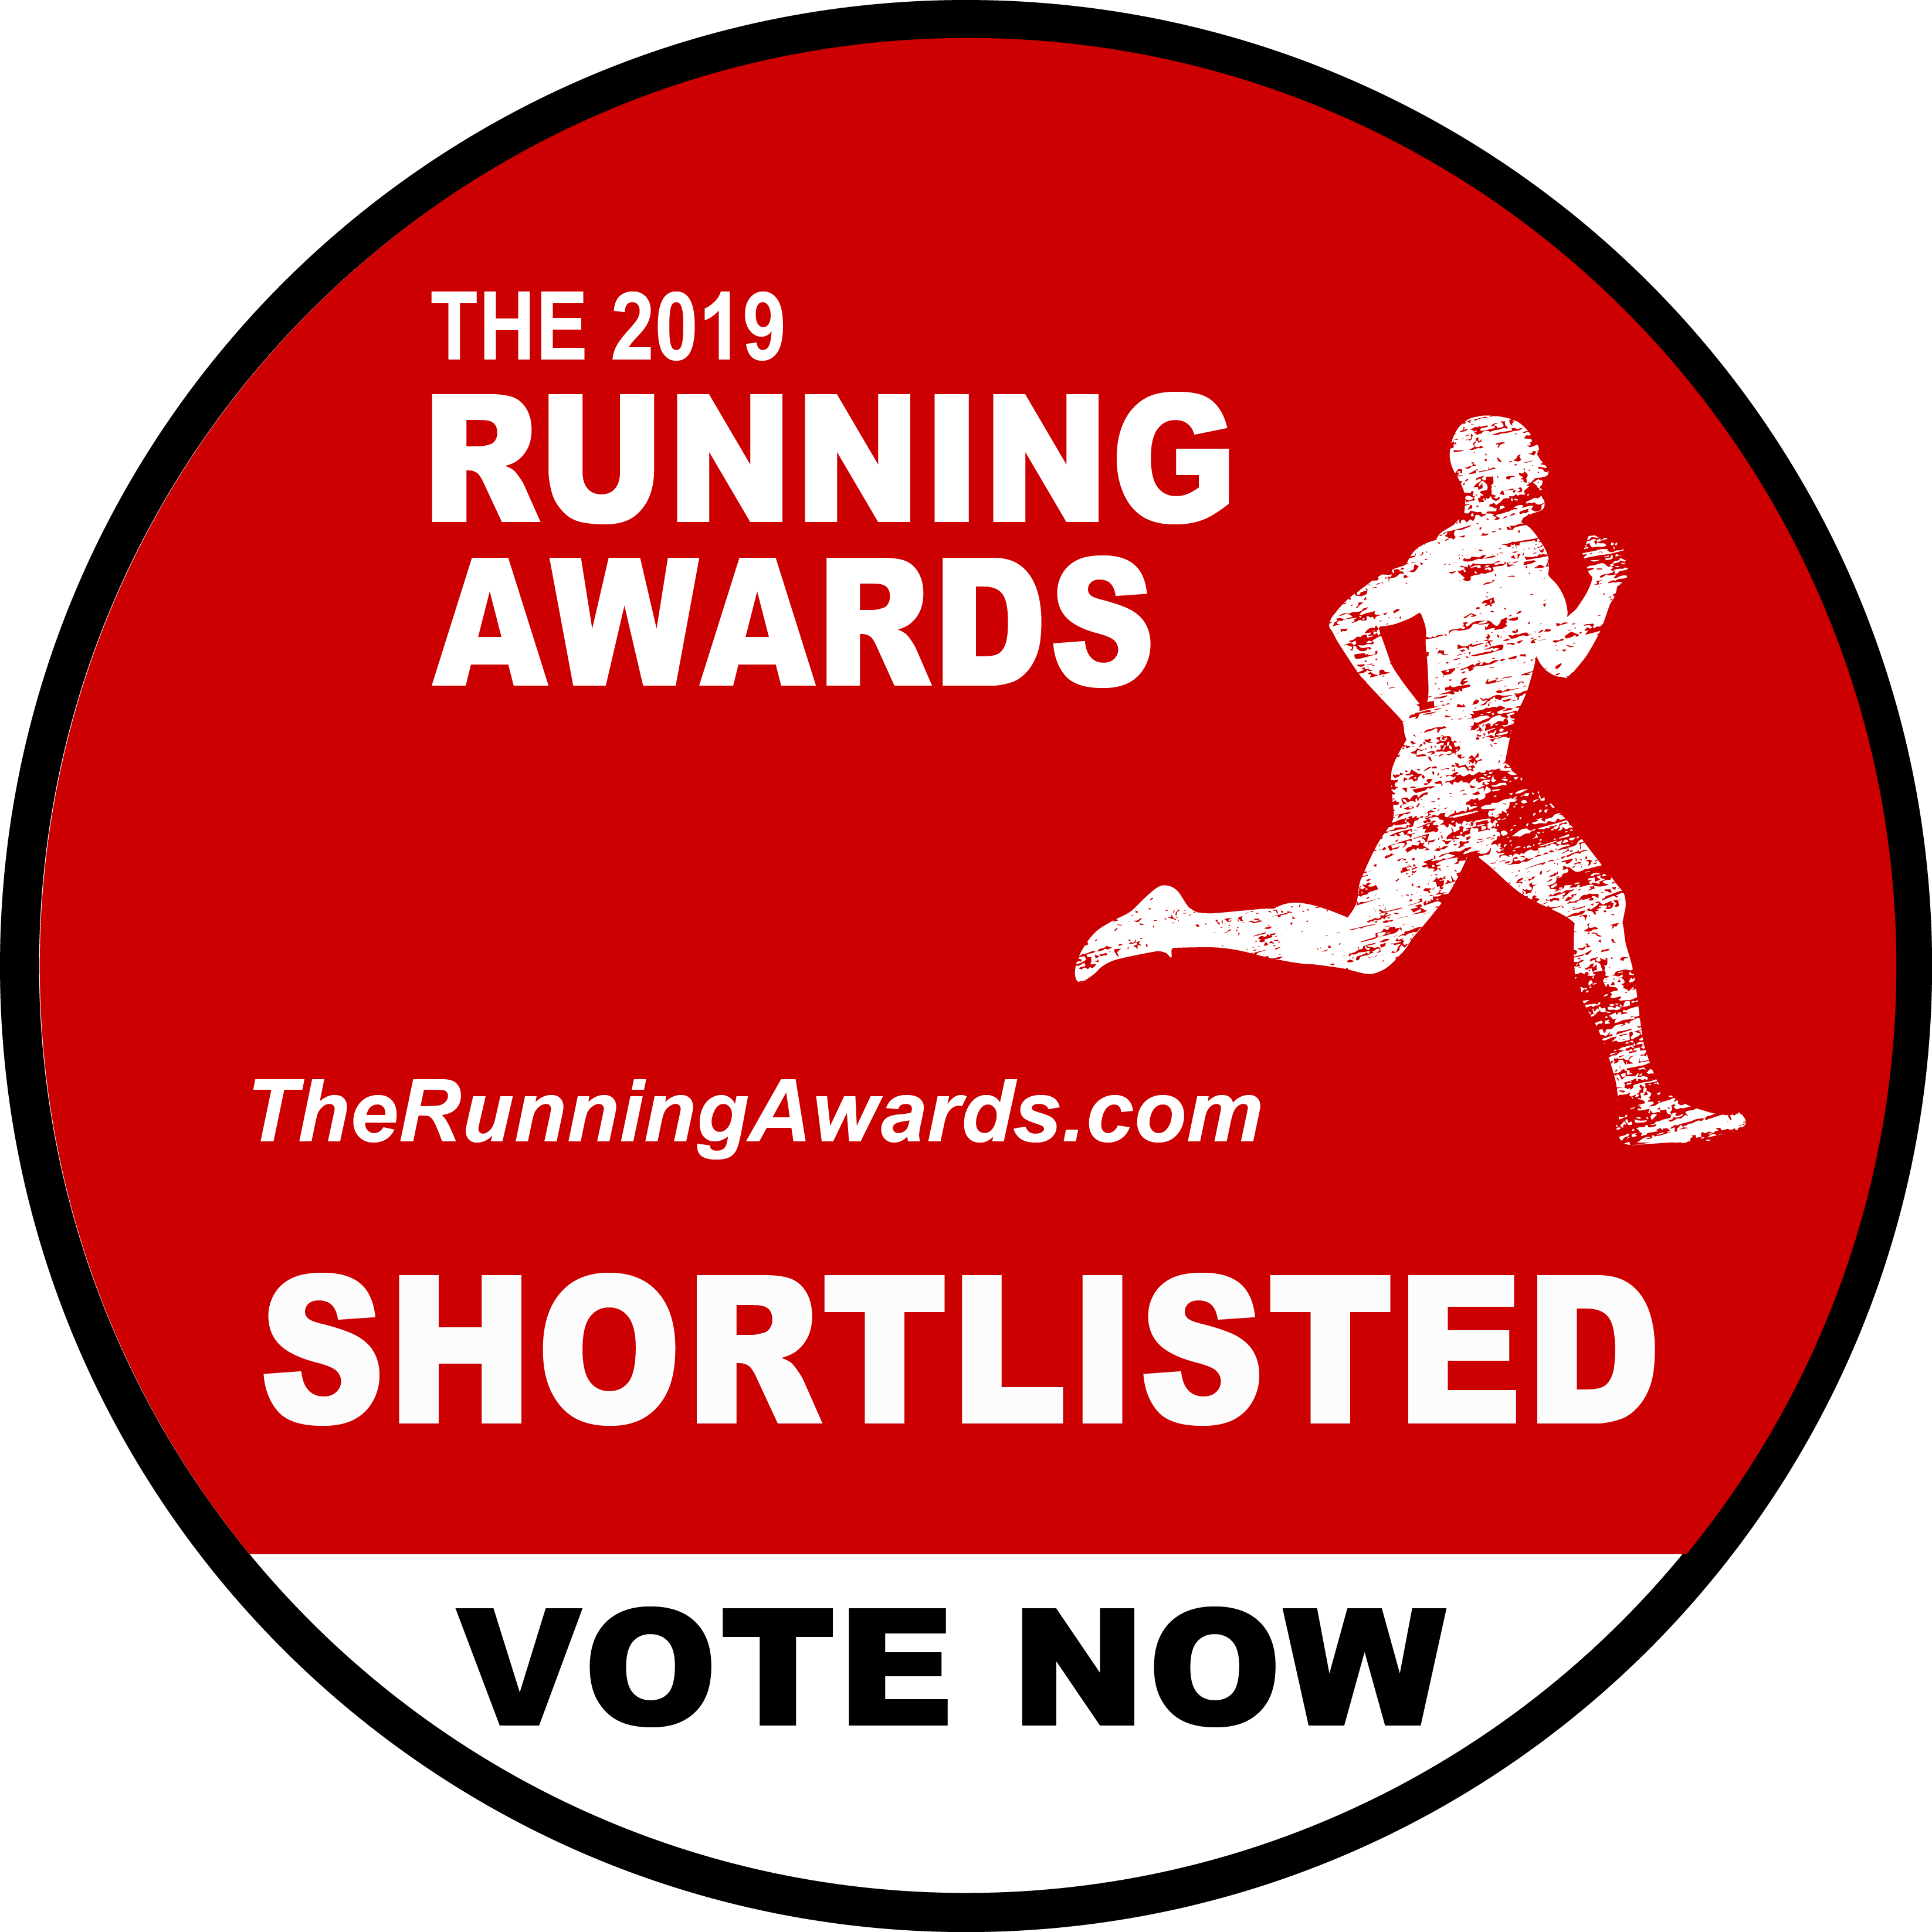 Running Awards Shortlisted